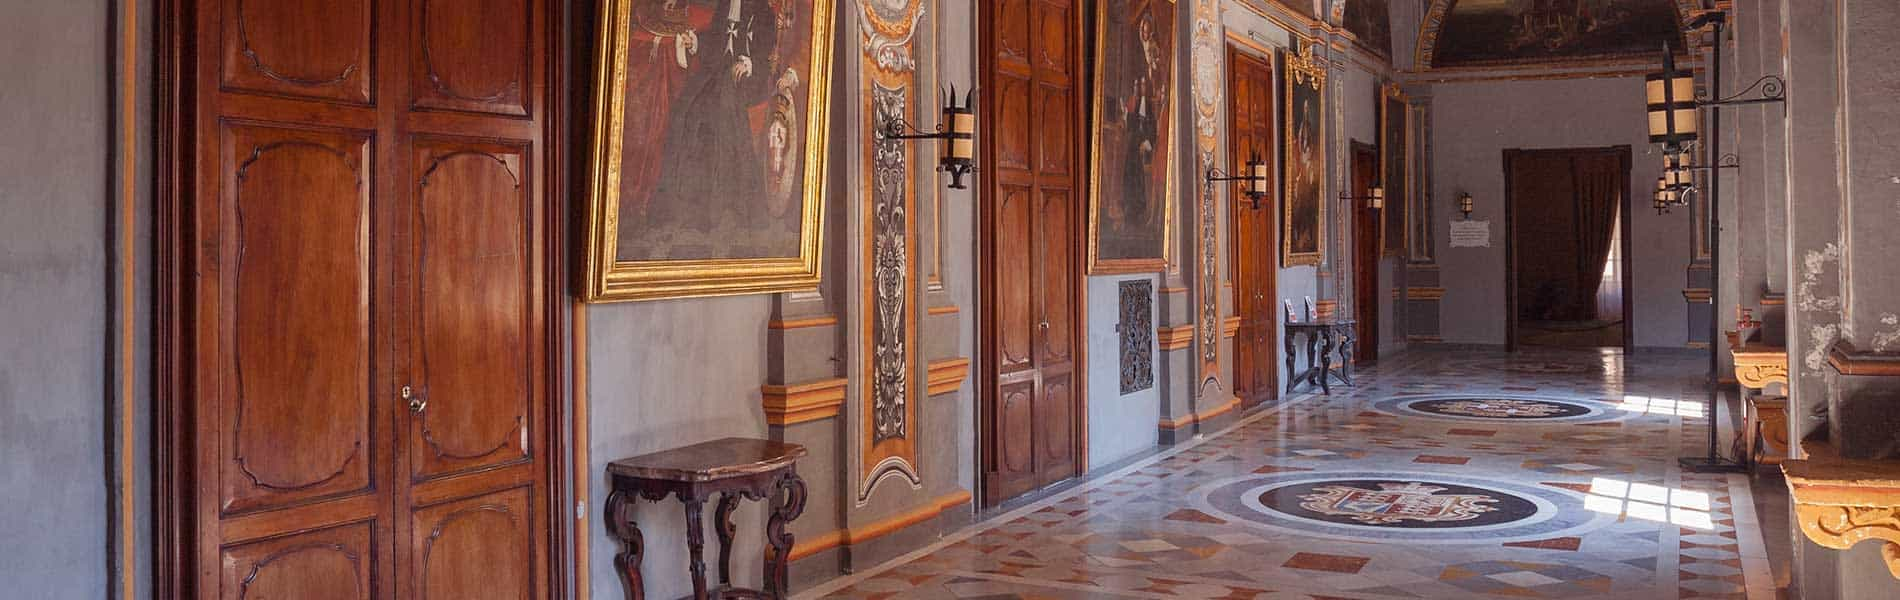 Halls of the Grandmaster's Palace: One of many reasons to visit Malta.